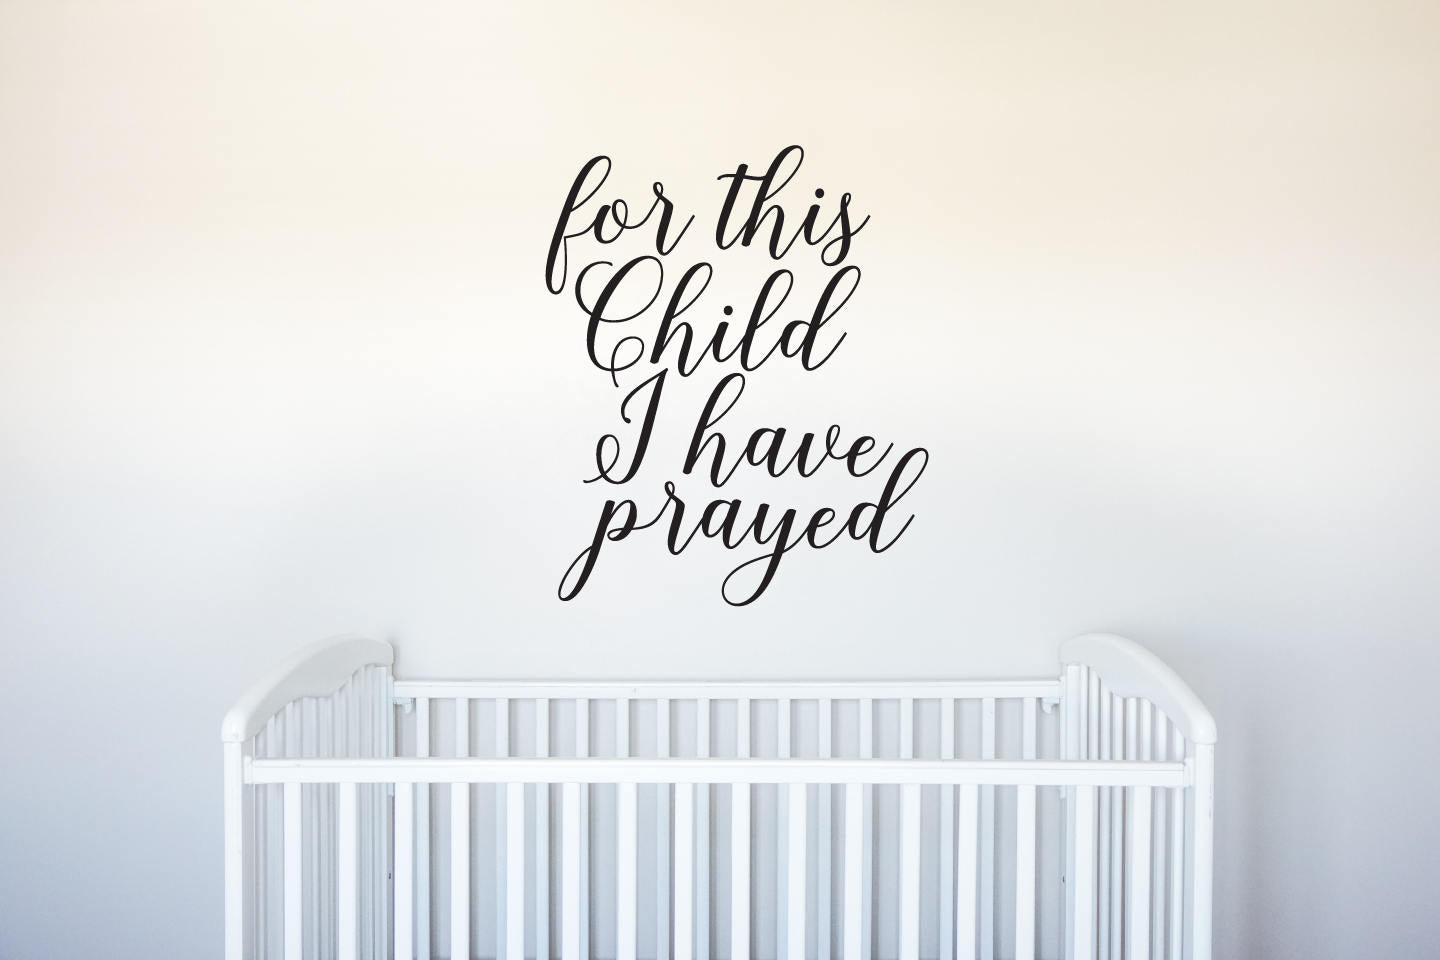 For This Child I Have Prayed - Vinyl Decal Wall Art Decor - v2